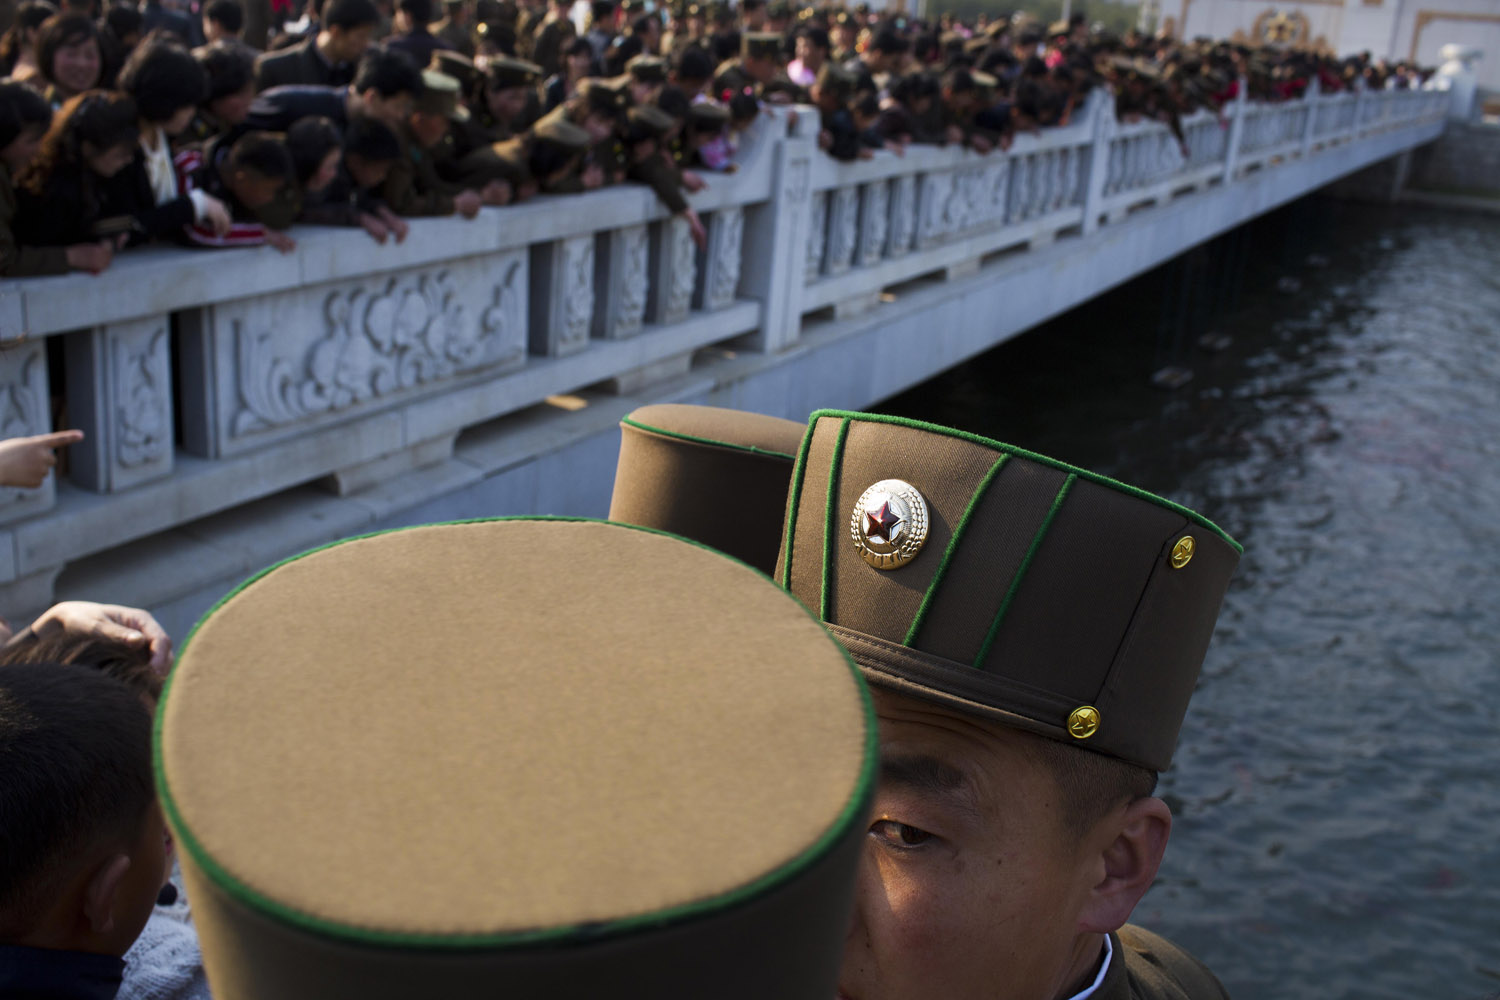 April 25, 2013. North Korean soldiers and civilians stand on a foot bridge to look at goldfish in a moat as they tour the grounds of Kumsusan Palace of the Sun, the mausoleum where the bodies of the late leaders Kim Il Sung and Kim Jong Il lie embalmed, in Pyongyang.